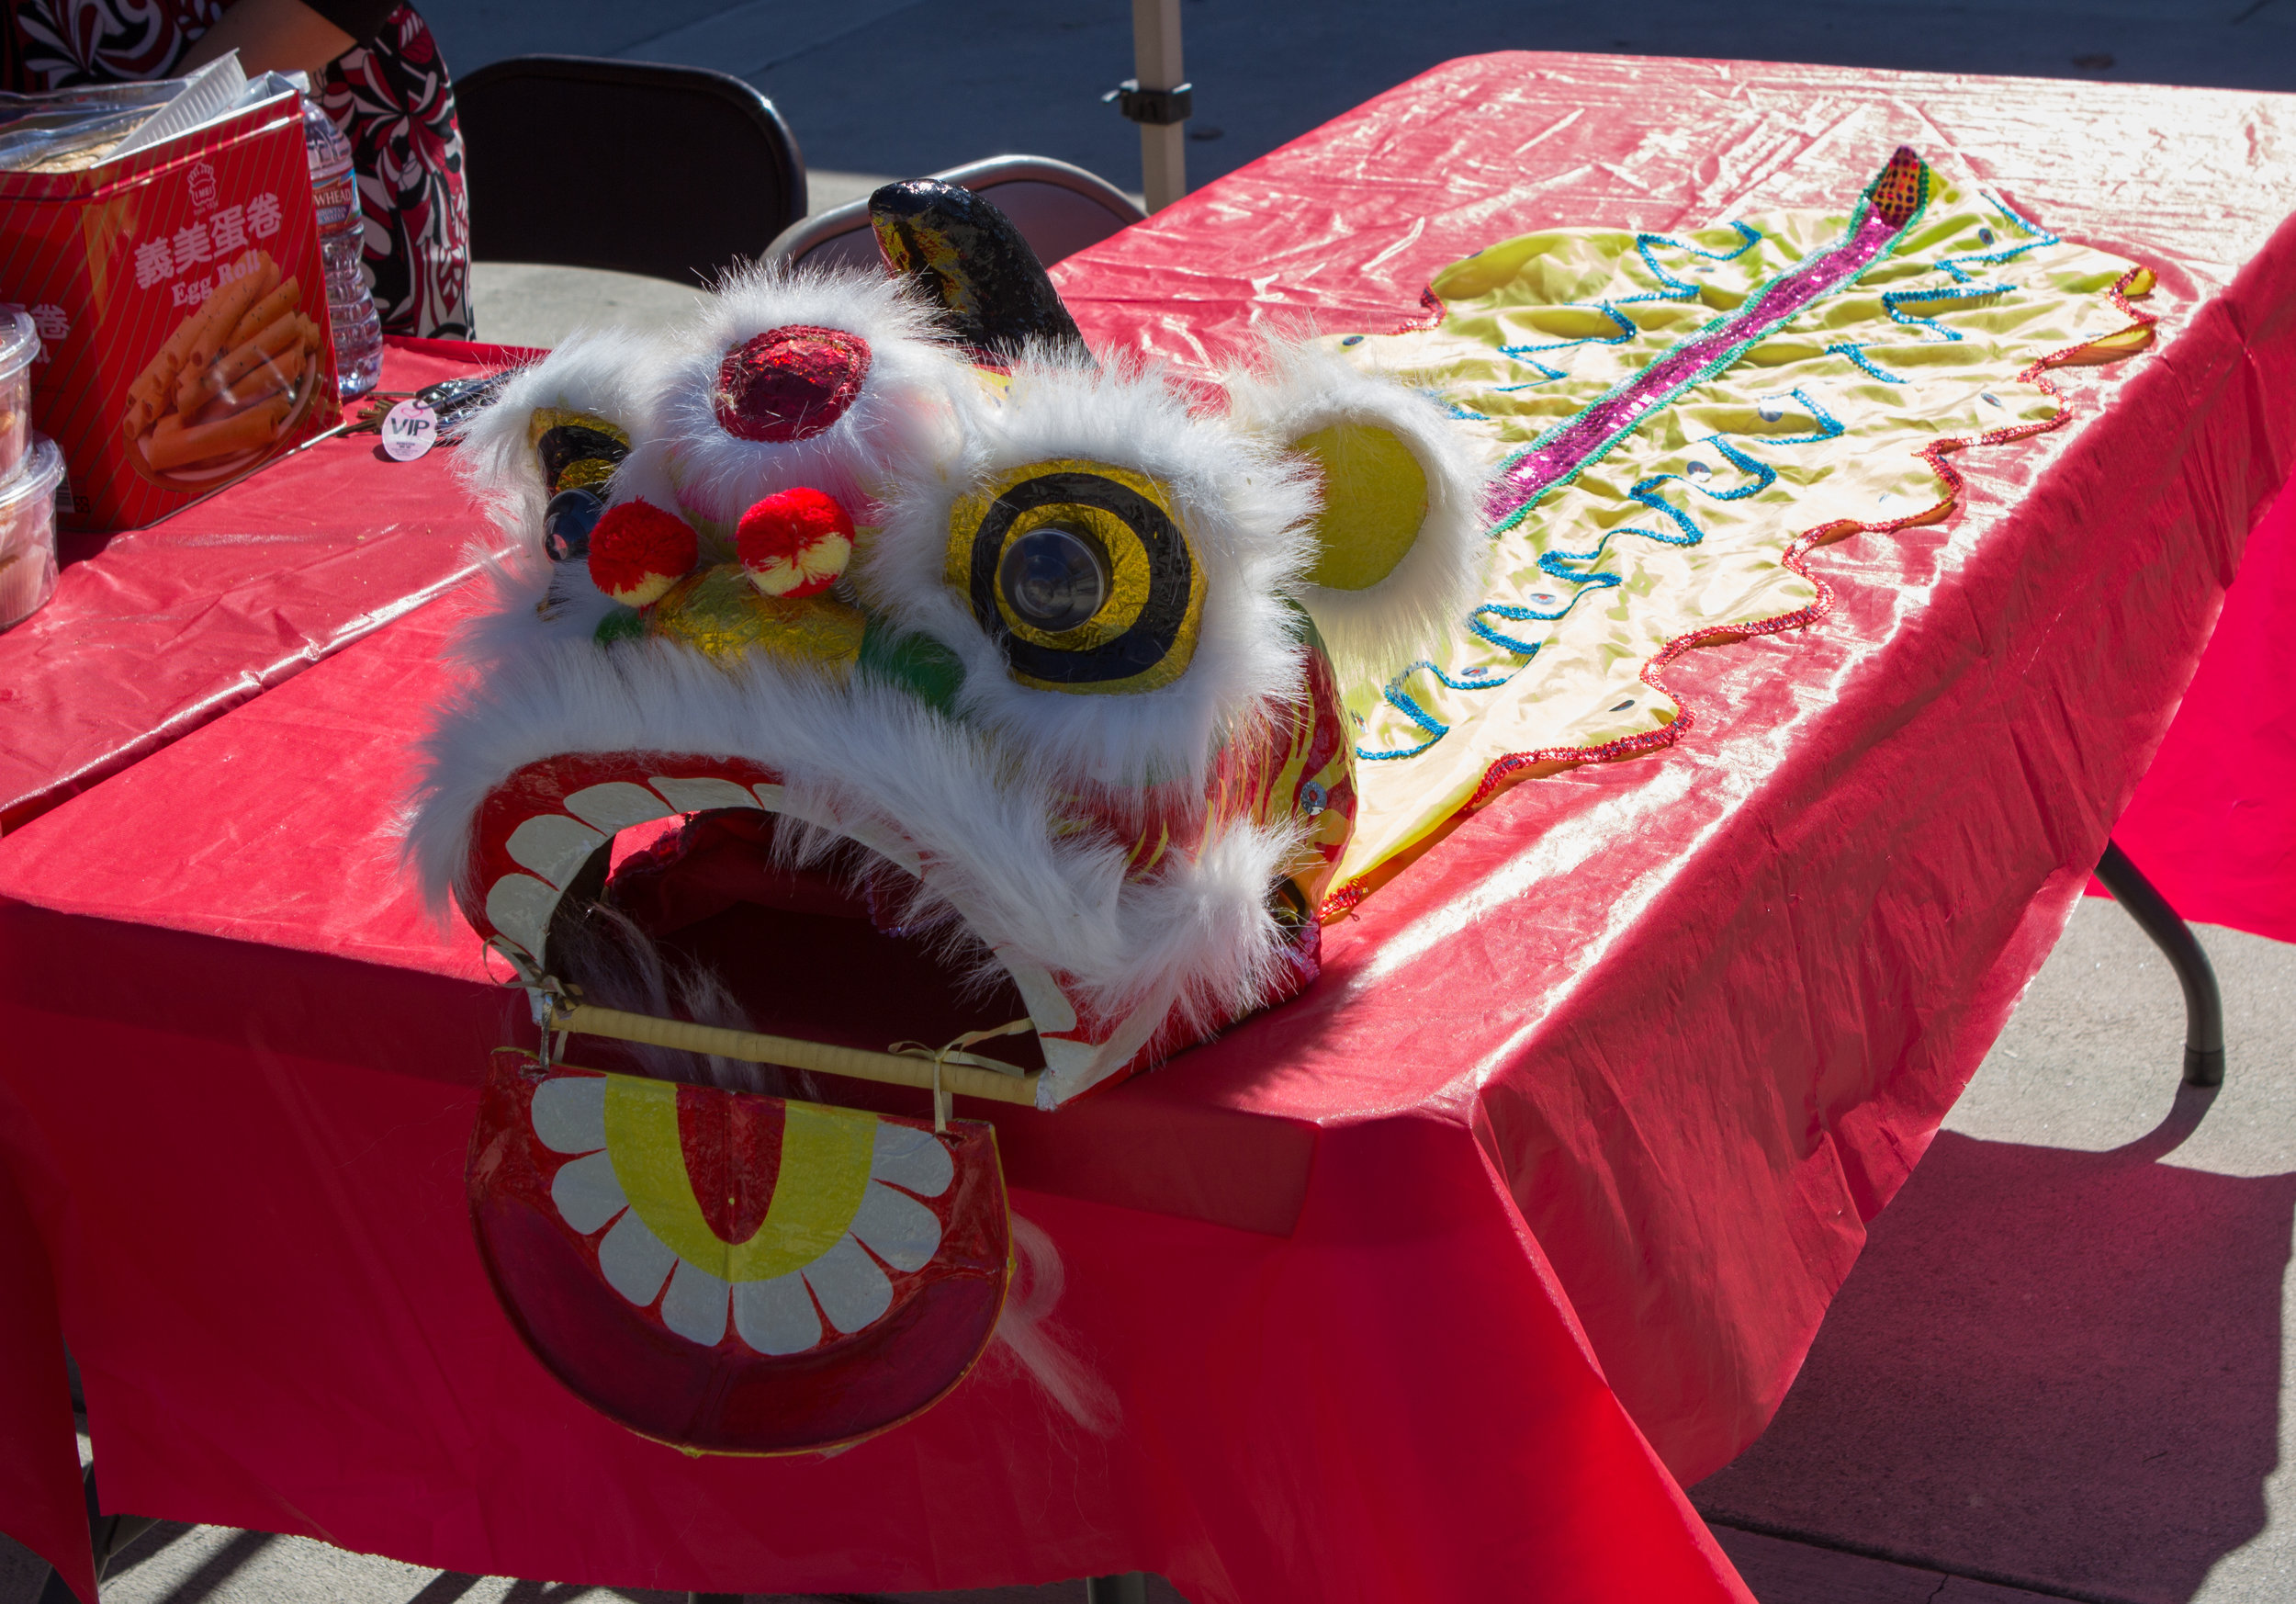 A decorative lion mask in miniature used for the Lunar New Year Celebration. Photo by Christopher Santee.